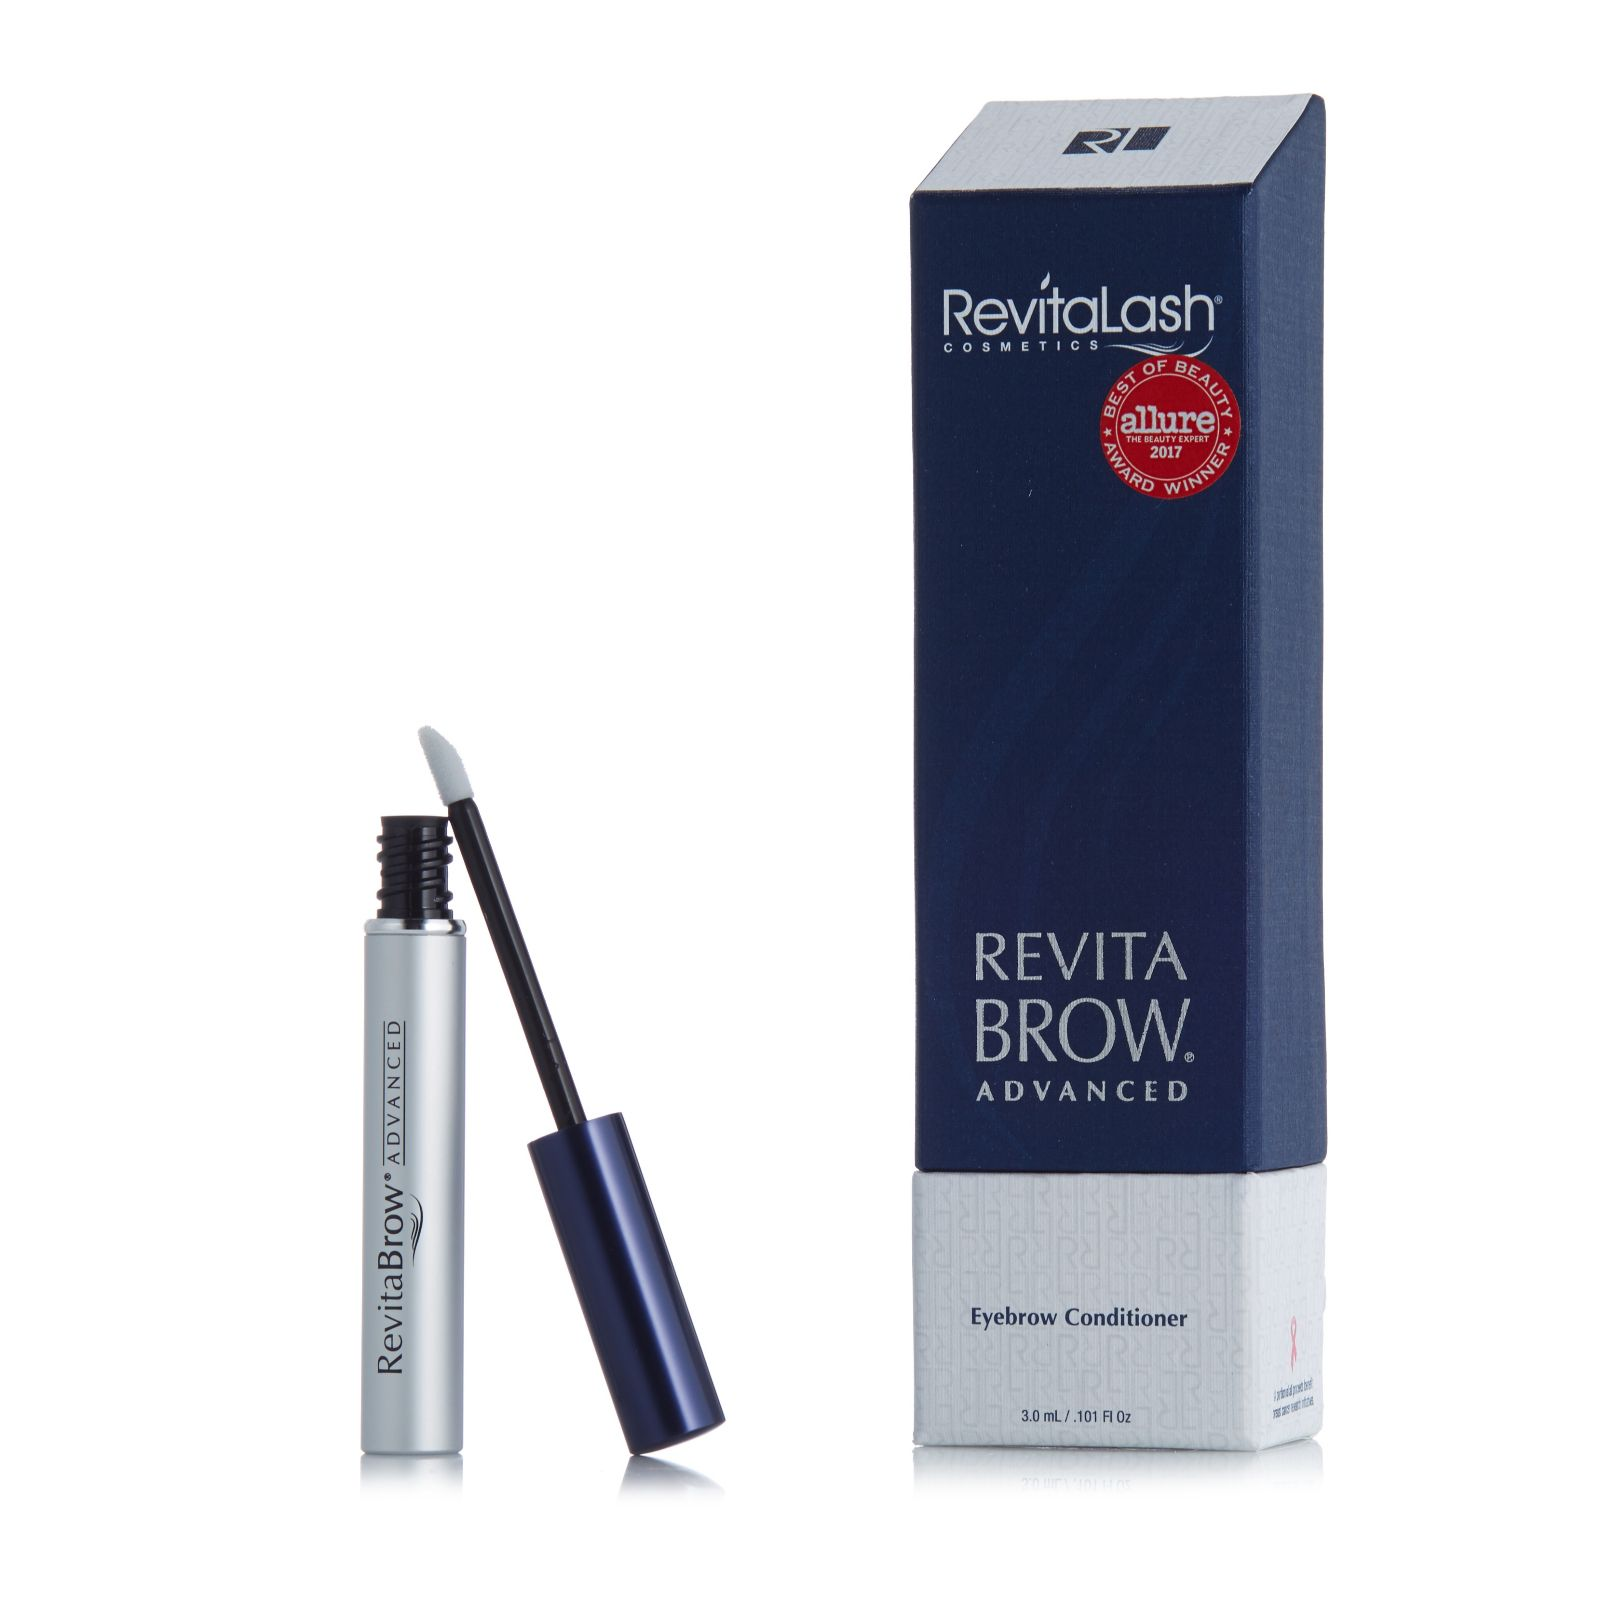 Revitalash Revitabrow 30ml Page 1 Qvc Uk